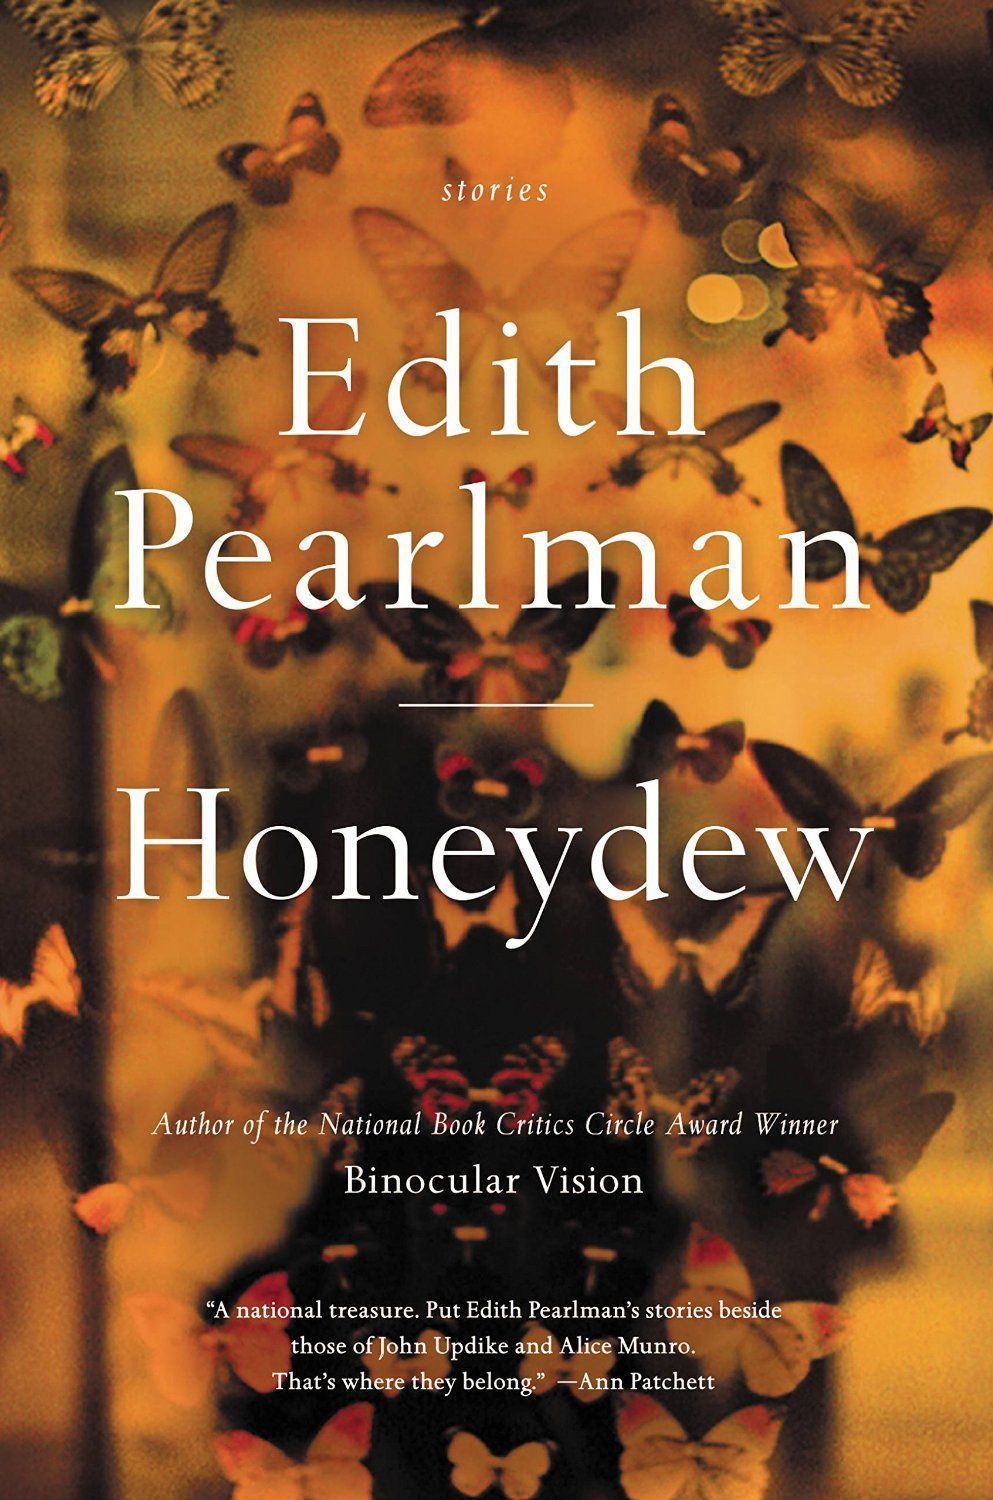 Pearlman's latest bolsters reputation as master of short story